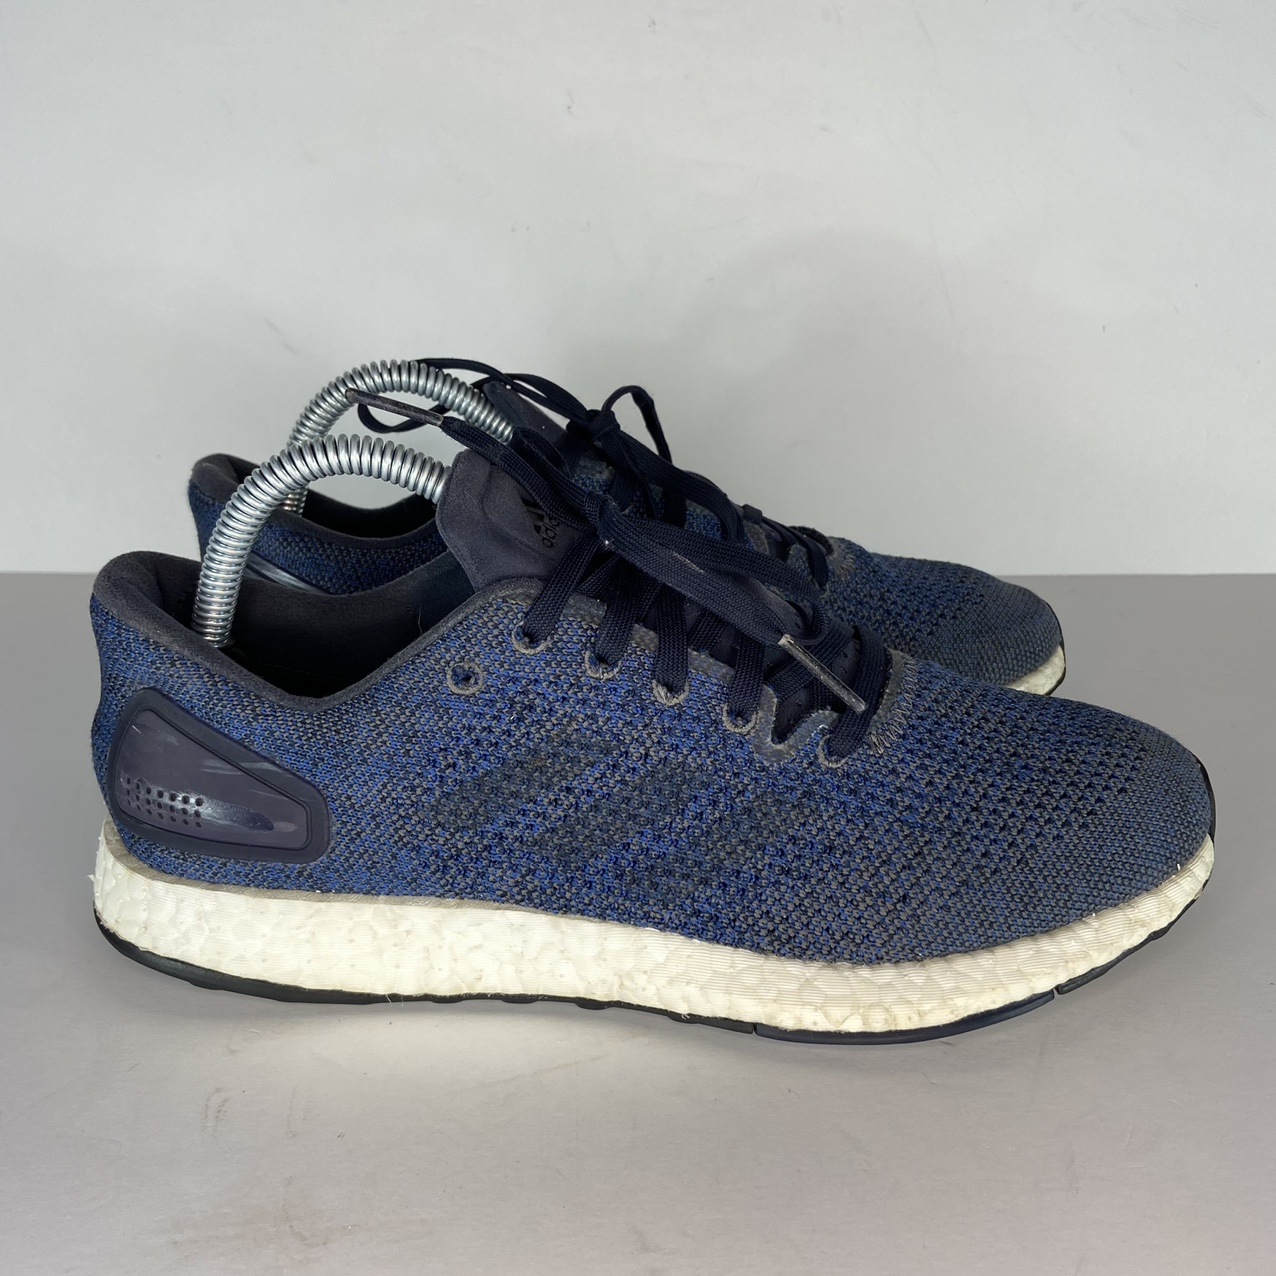 Product Image 1 - Adidas pure boost DPR sneakers.